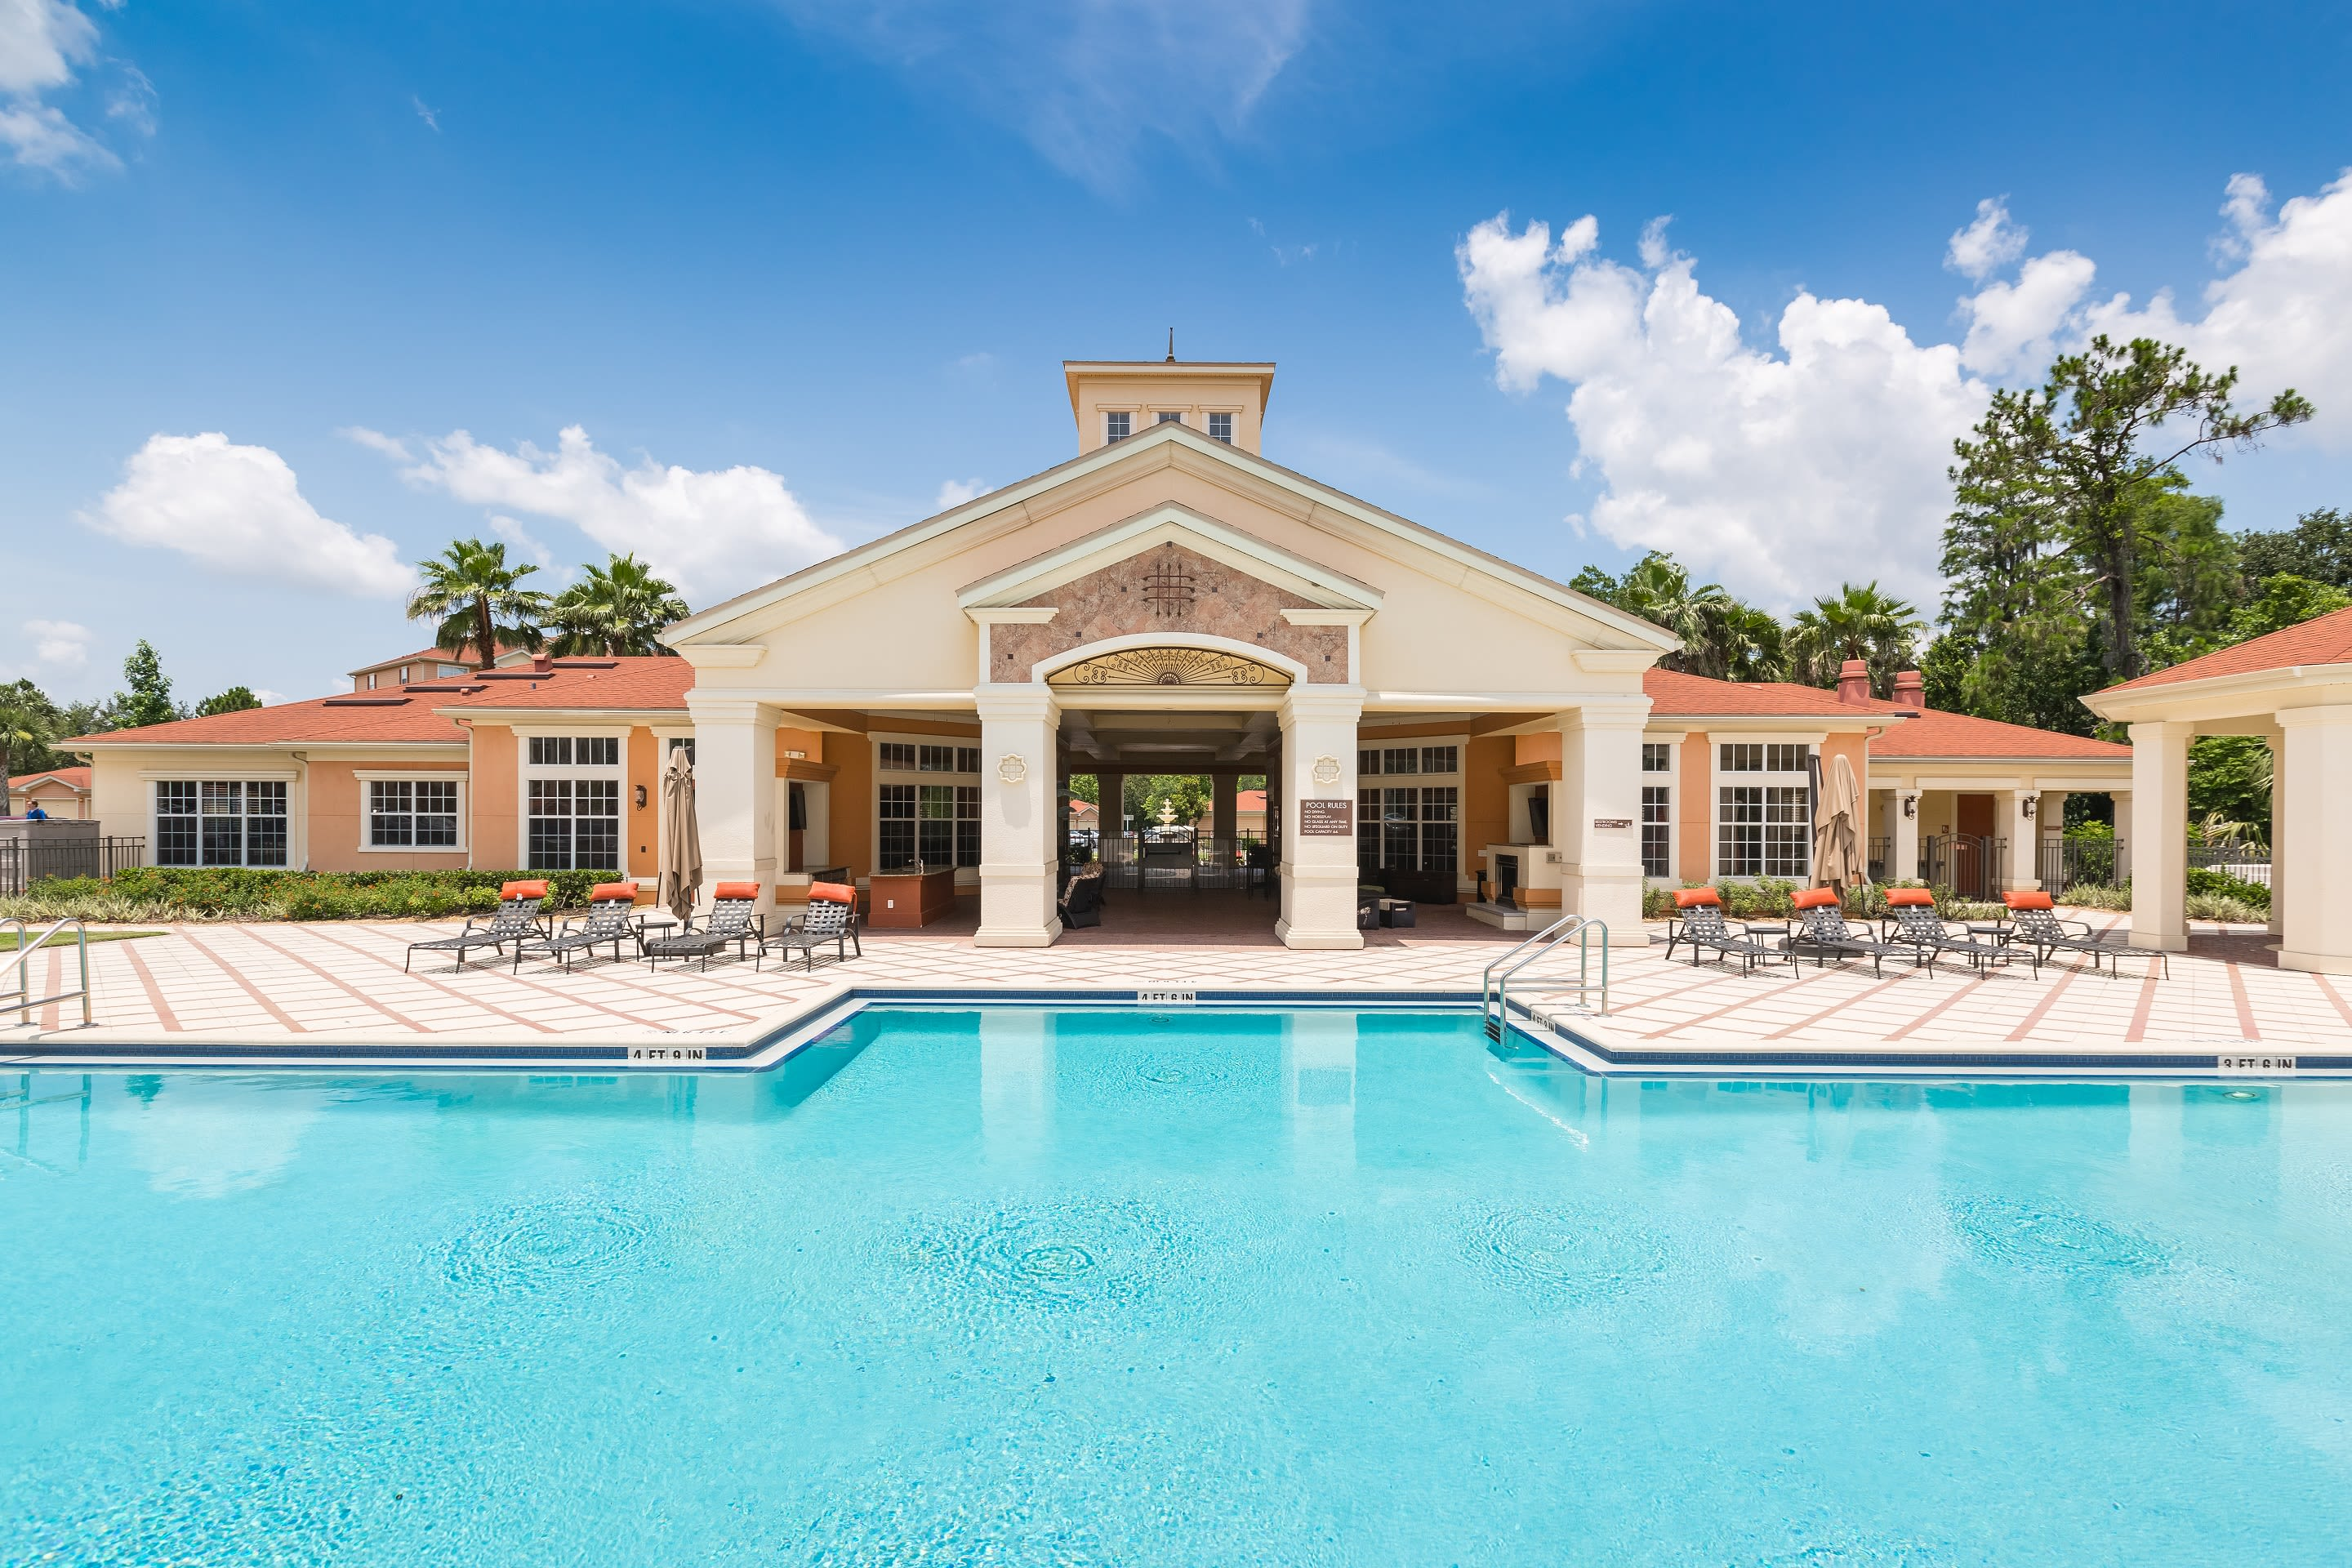 Four corners kissimmee fl apartments for rent the aspect for 1 bedroom apartments kissimmee fl